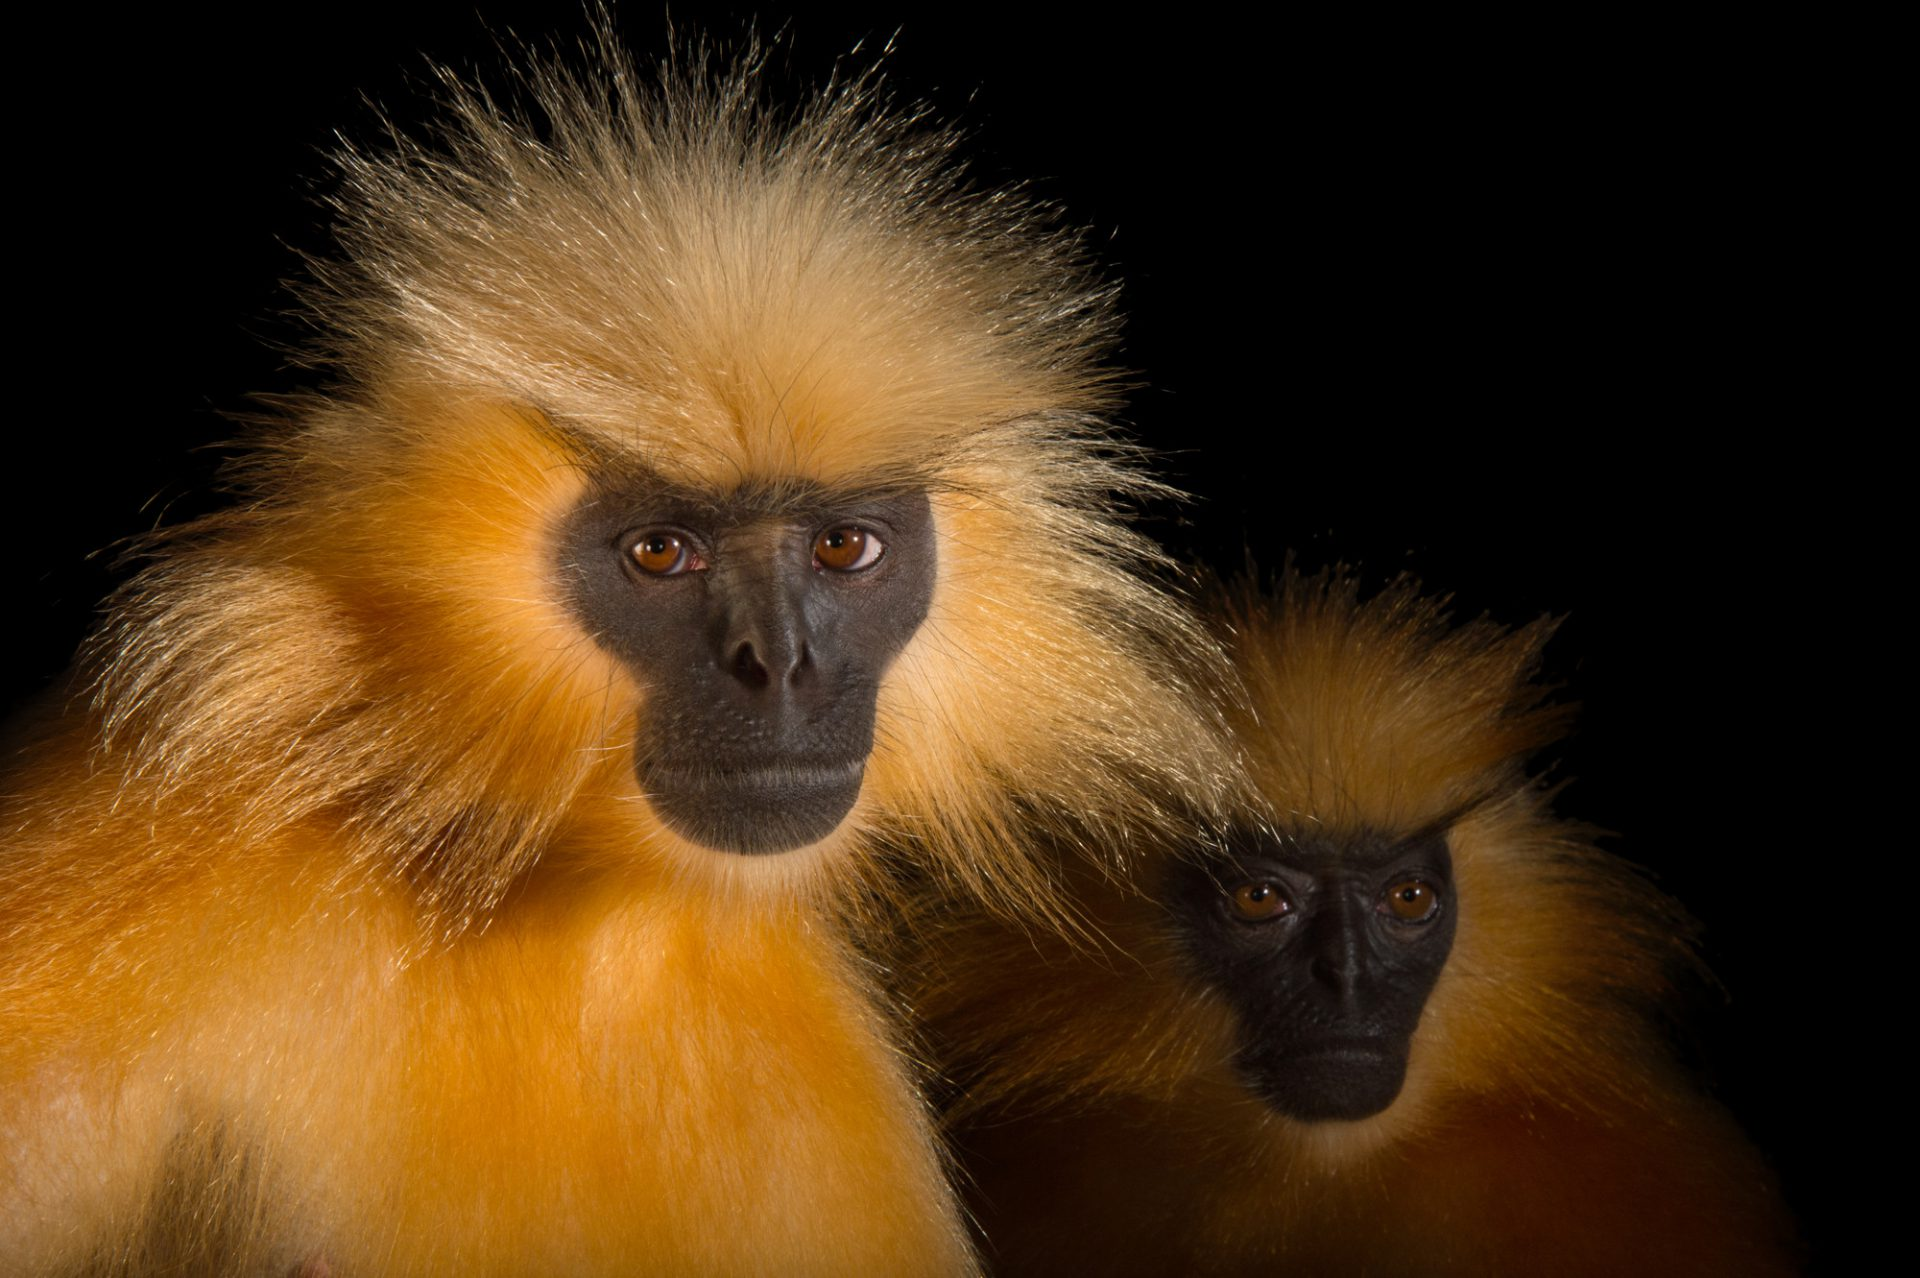 Picture of endangered (IUCN) and federally endangered Gee's golden langurs (Trachypithecus geei) at the Assam State Zoo cum Botanical Garden in India.